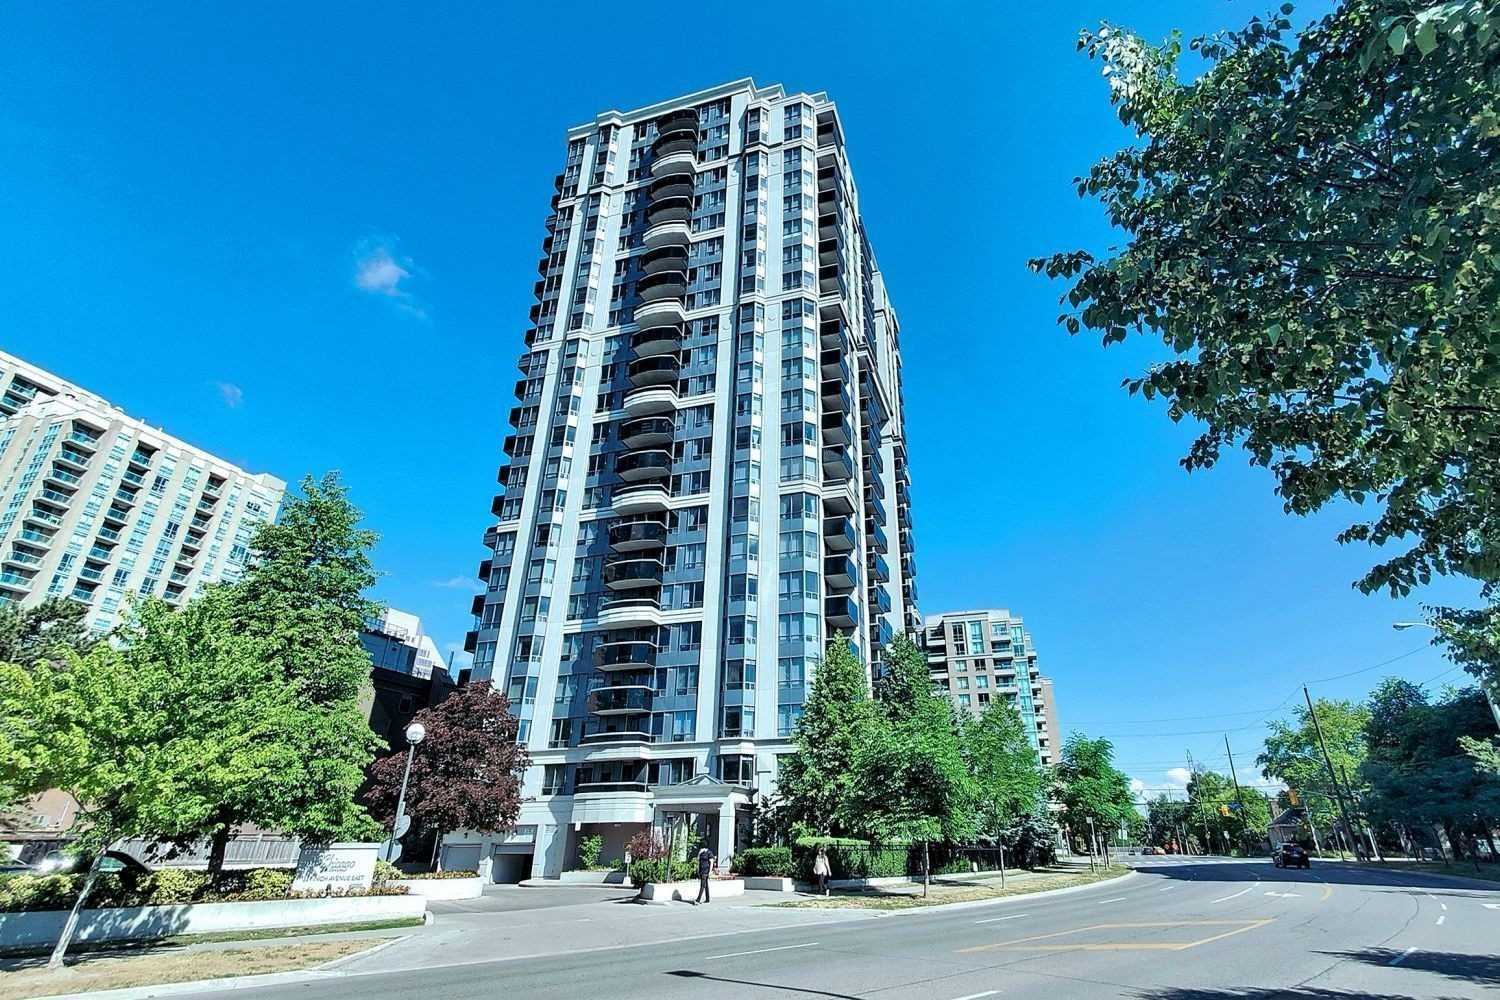 35 Finch Ave, Toronto, Ontario M2N6Z8, 1 Bedroom Bedrooms, 4 Rooms Rooms,1 BathroomBathrooms,Condo Apt,For Sale,Finch,C4902336